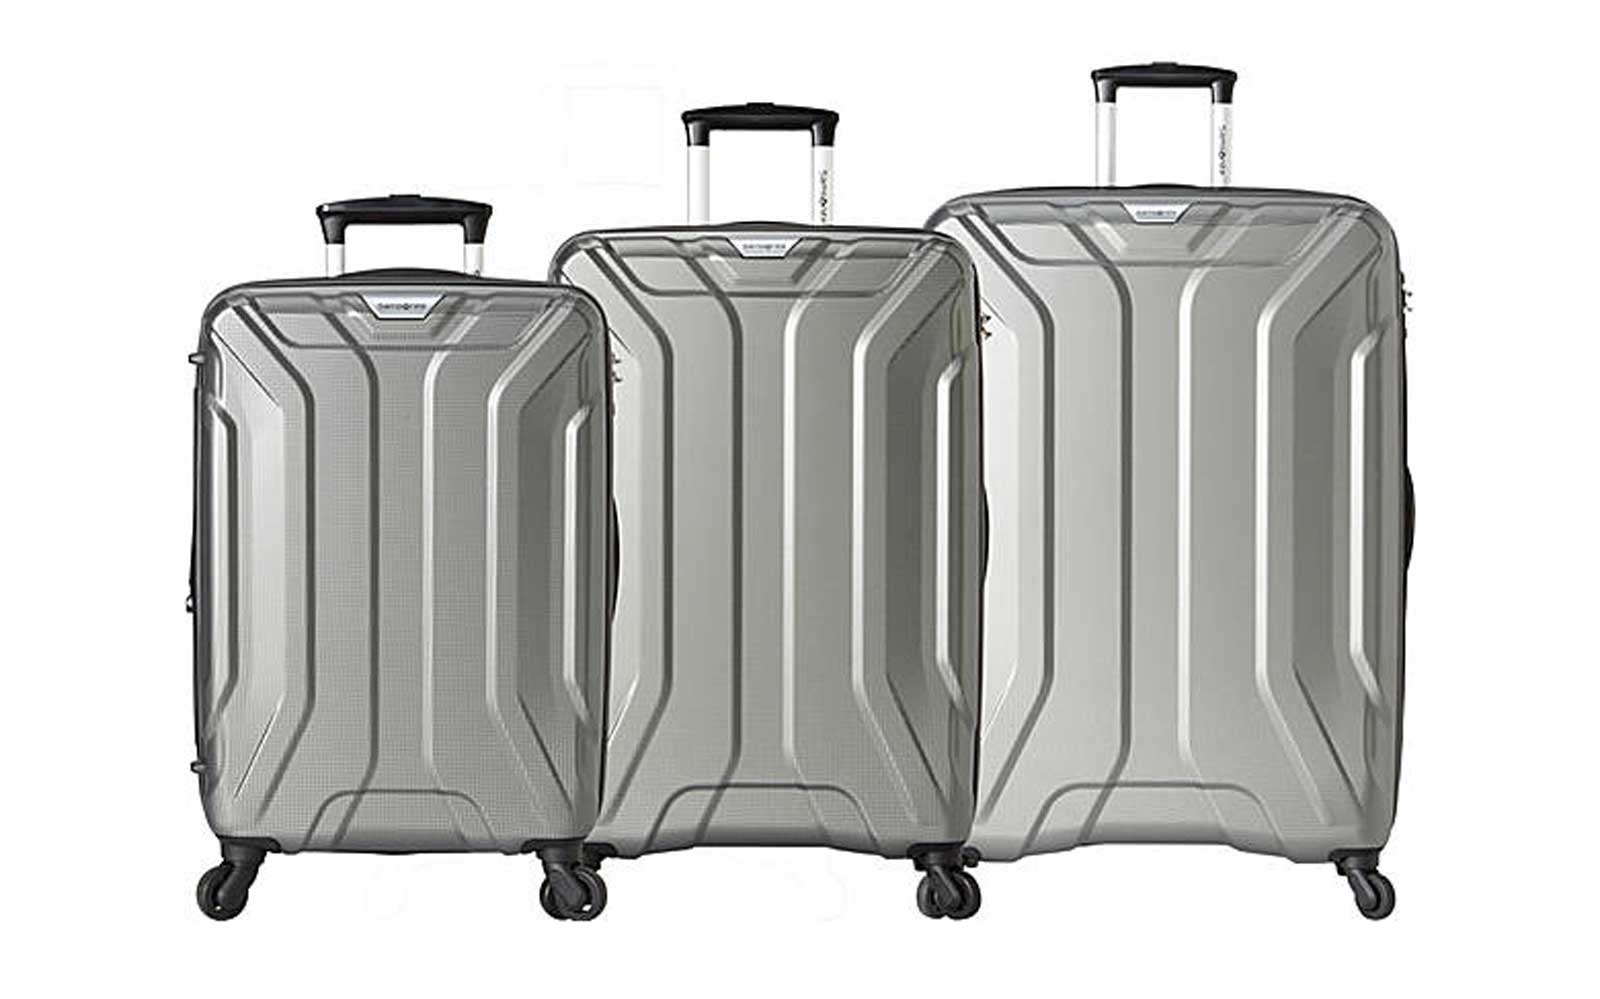 Samsonite Englewood 3 Piece Expandable Hardside Spinner Luggage Set